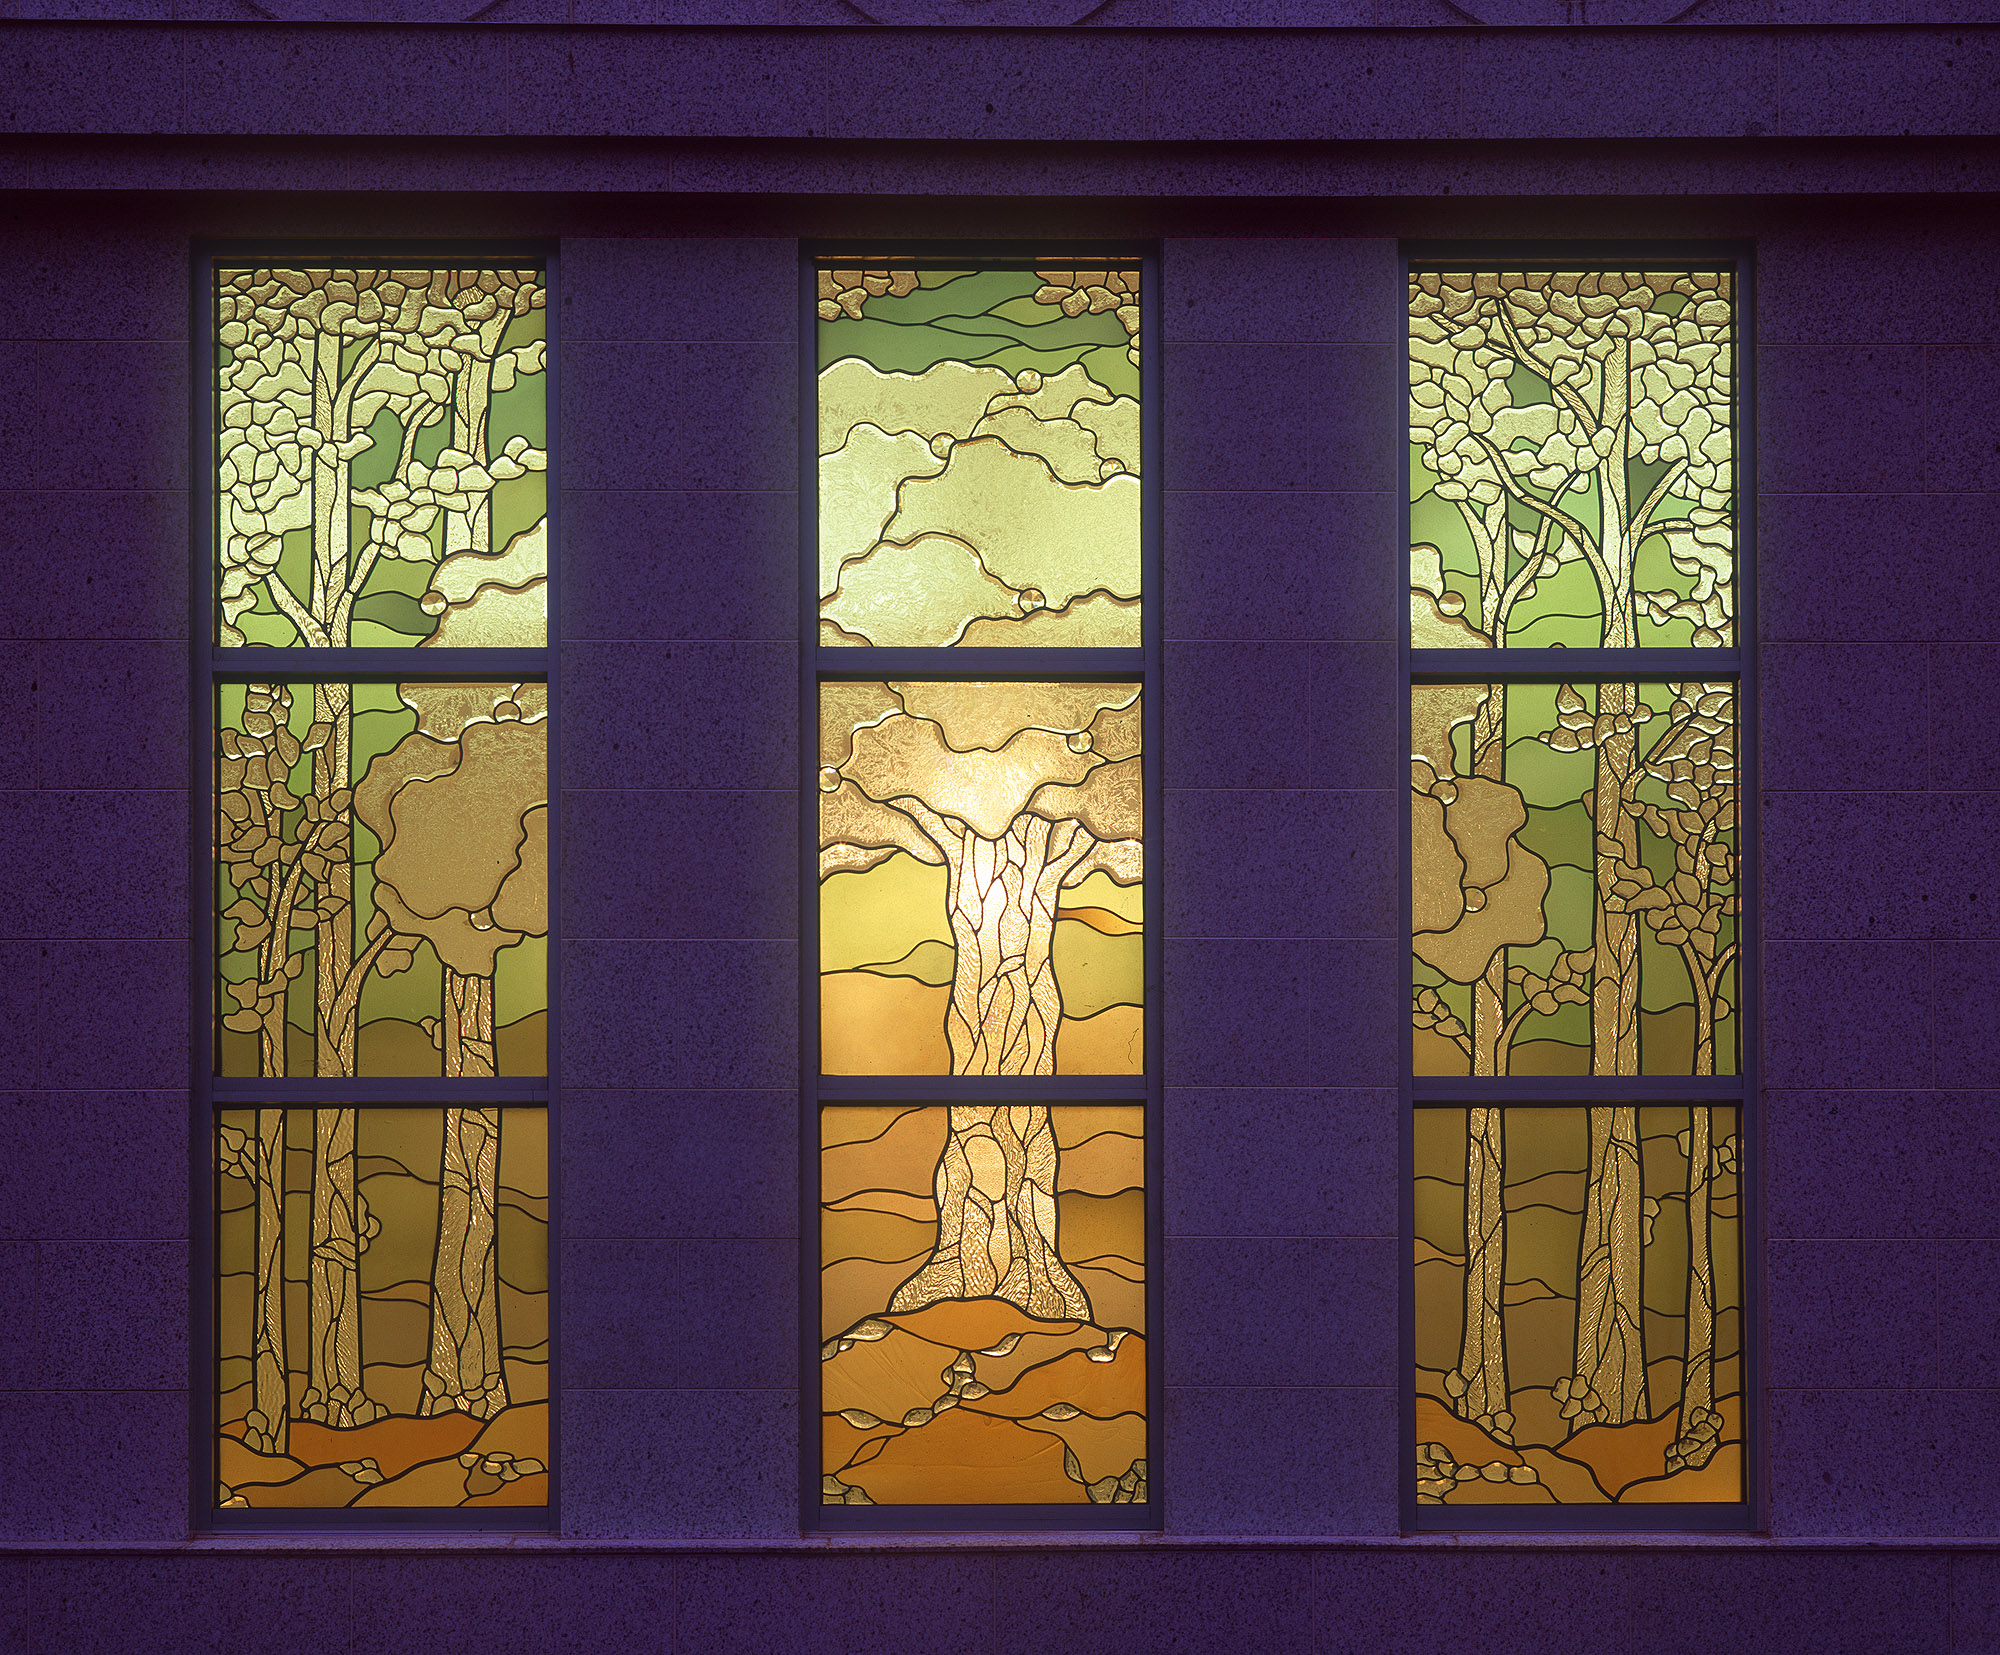 The window of the celestial room at the Palmyra New York Temple from outside the temple. This custom window features an interpretation of the tree of life.